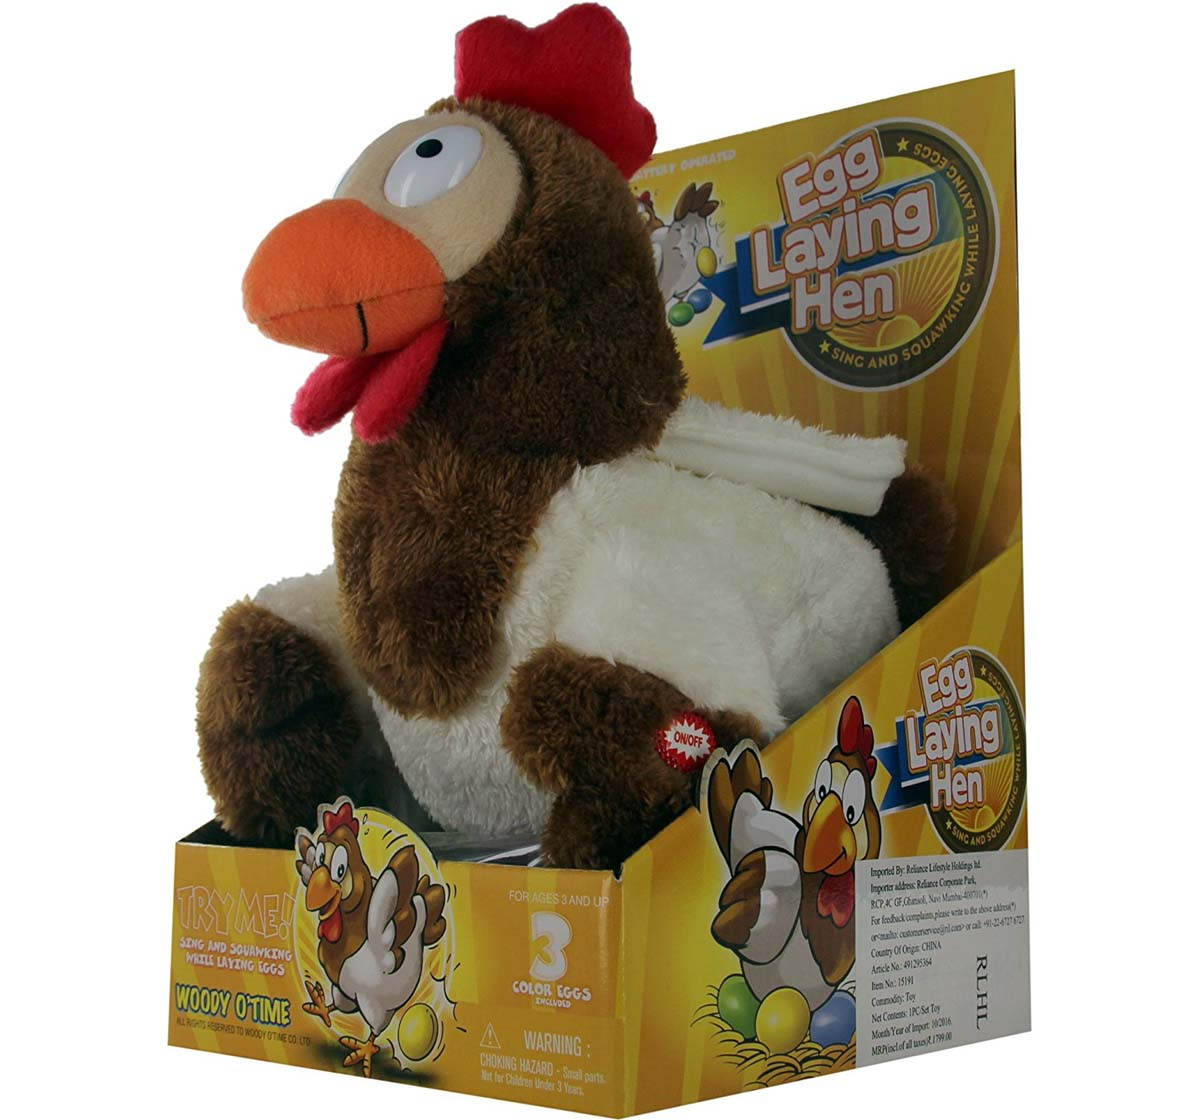 Woody   Woody O'Time Funny Brown Egg Laying Hen Interactive Soft Toys for Kids age 3Y+ 15.6 Cm